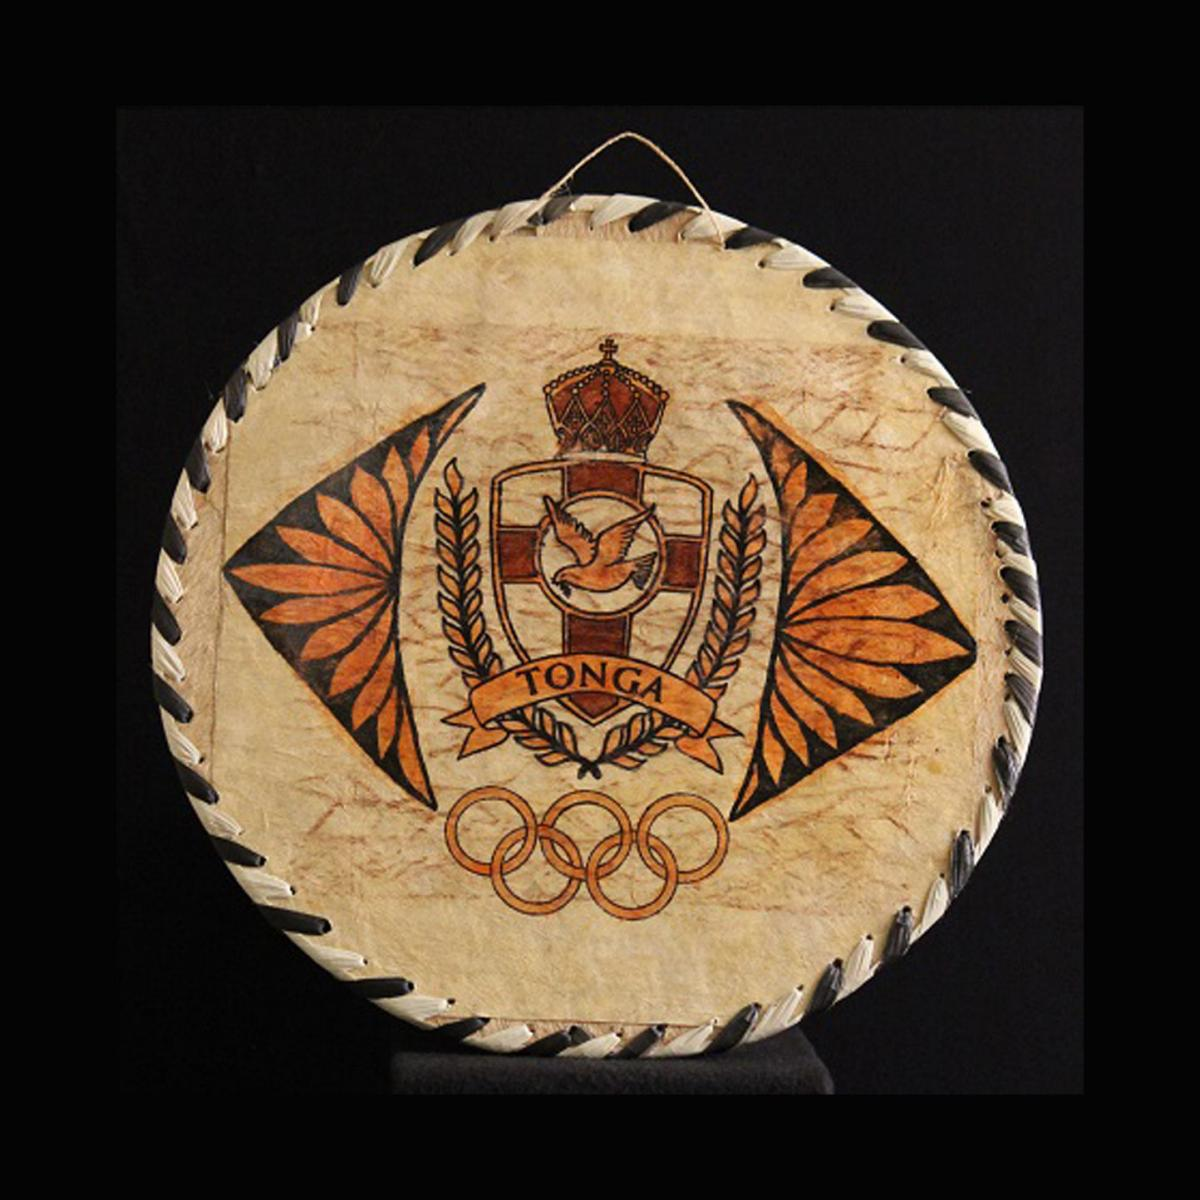 Tonga Tapa Cloth Plaque